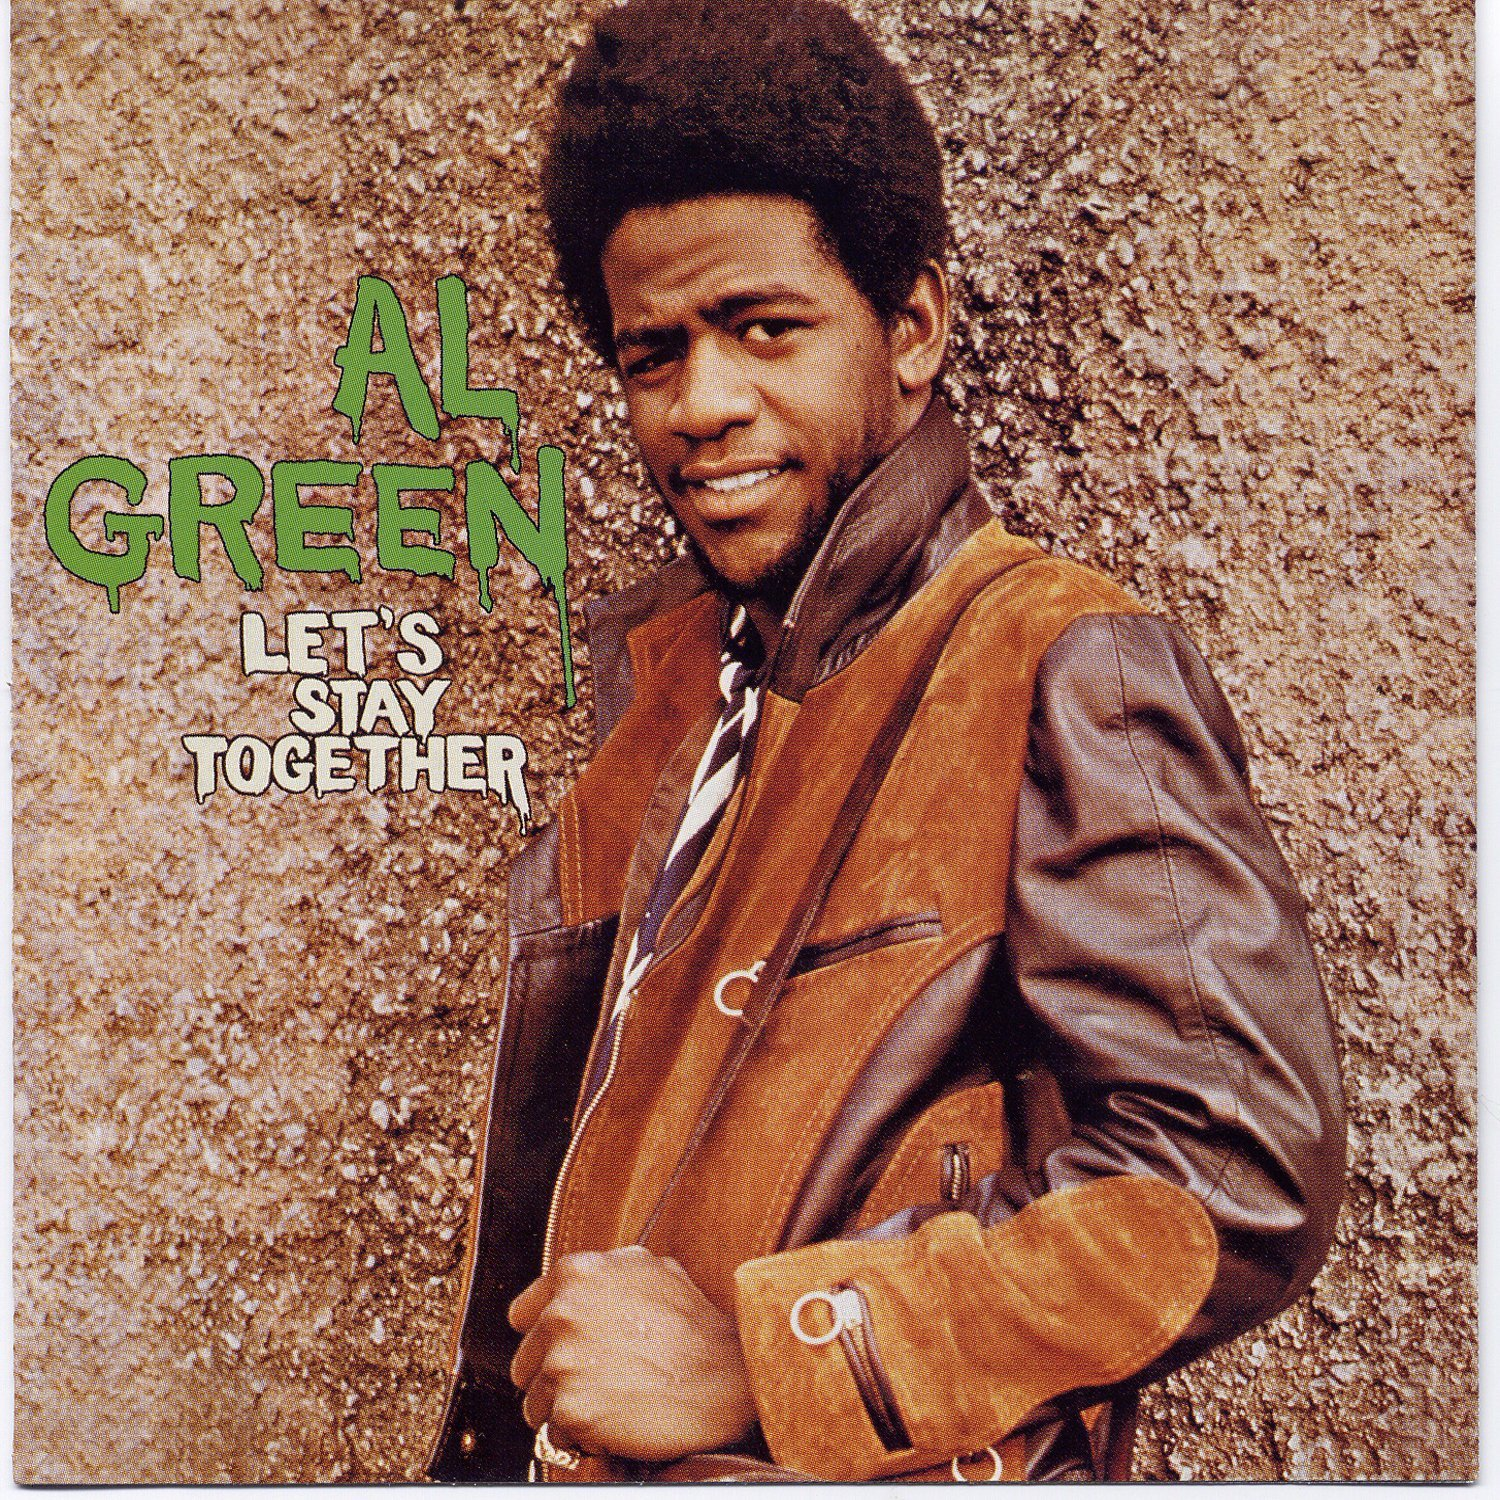 wedding songs, al green lets stay together